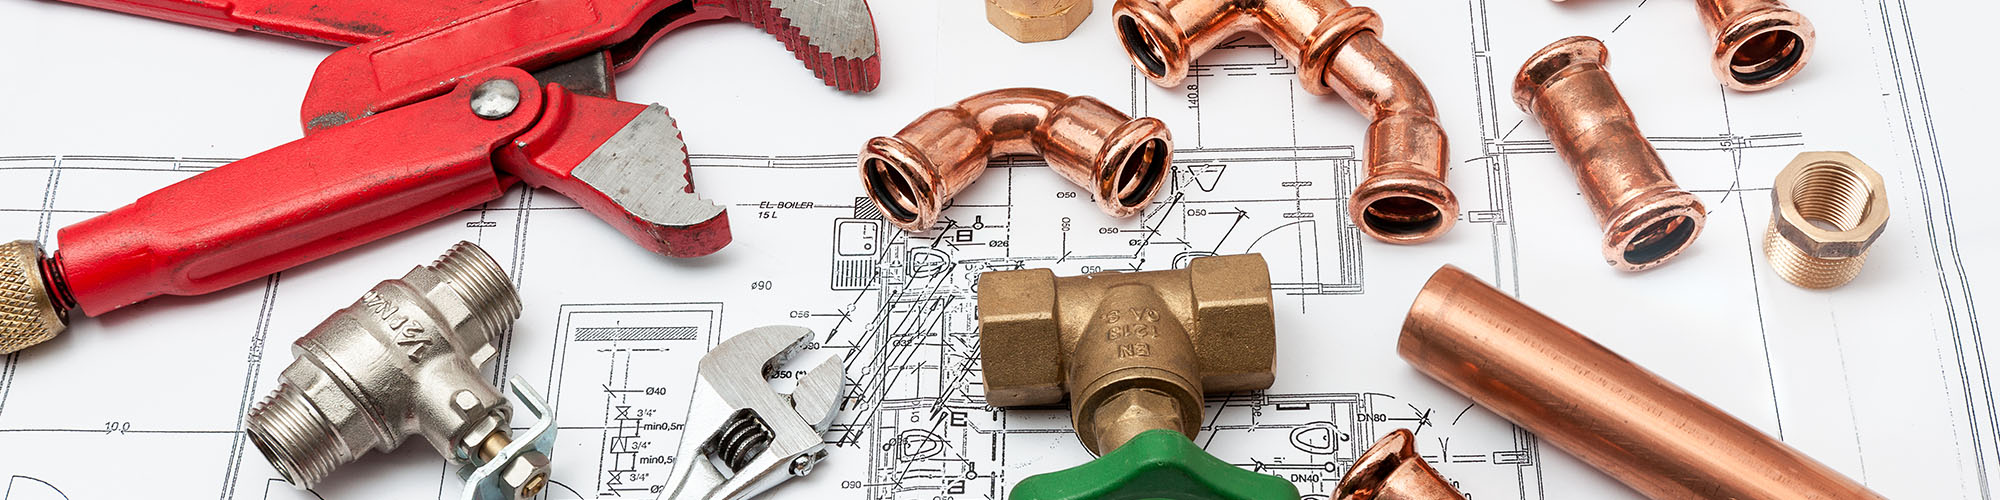 Copper Repiping Services in Paramount, CA